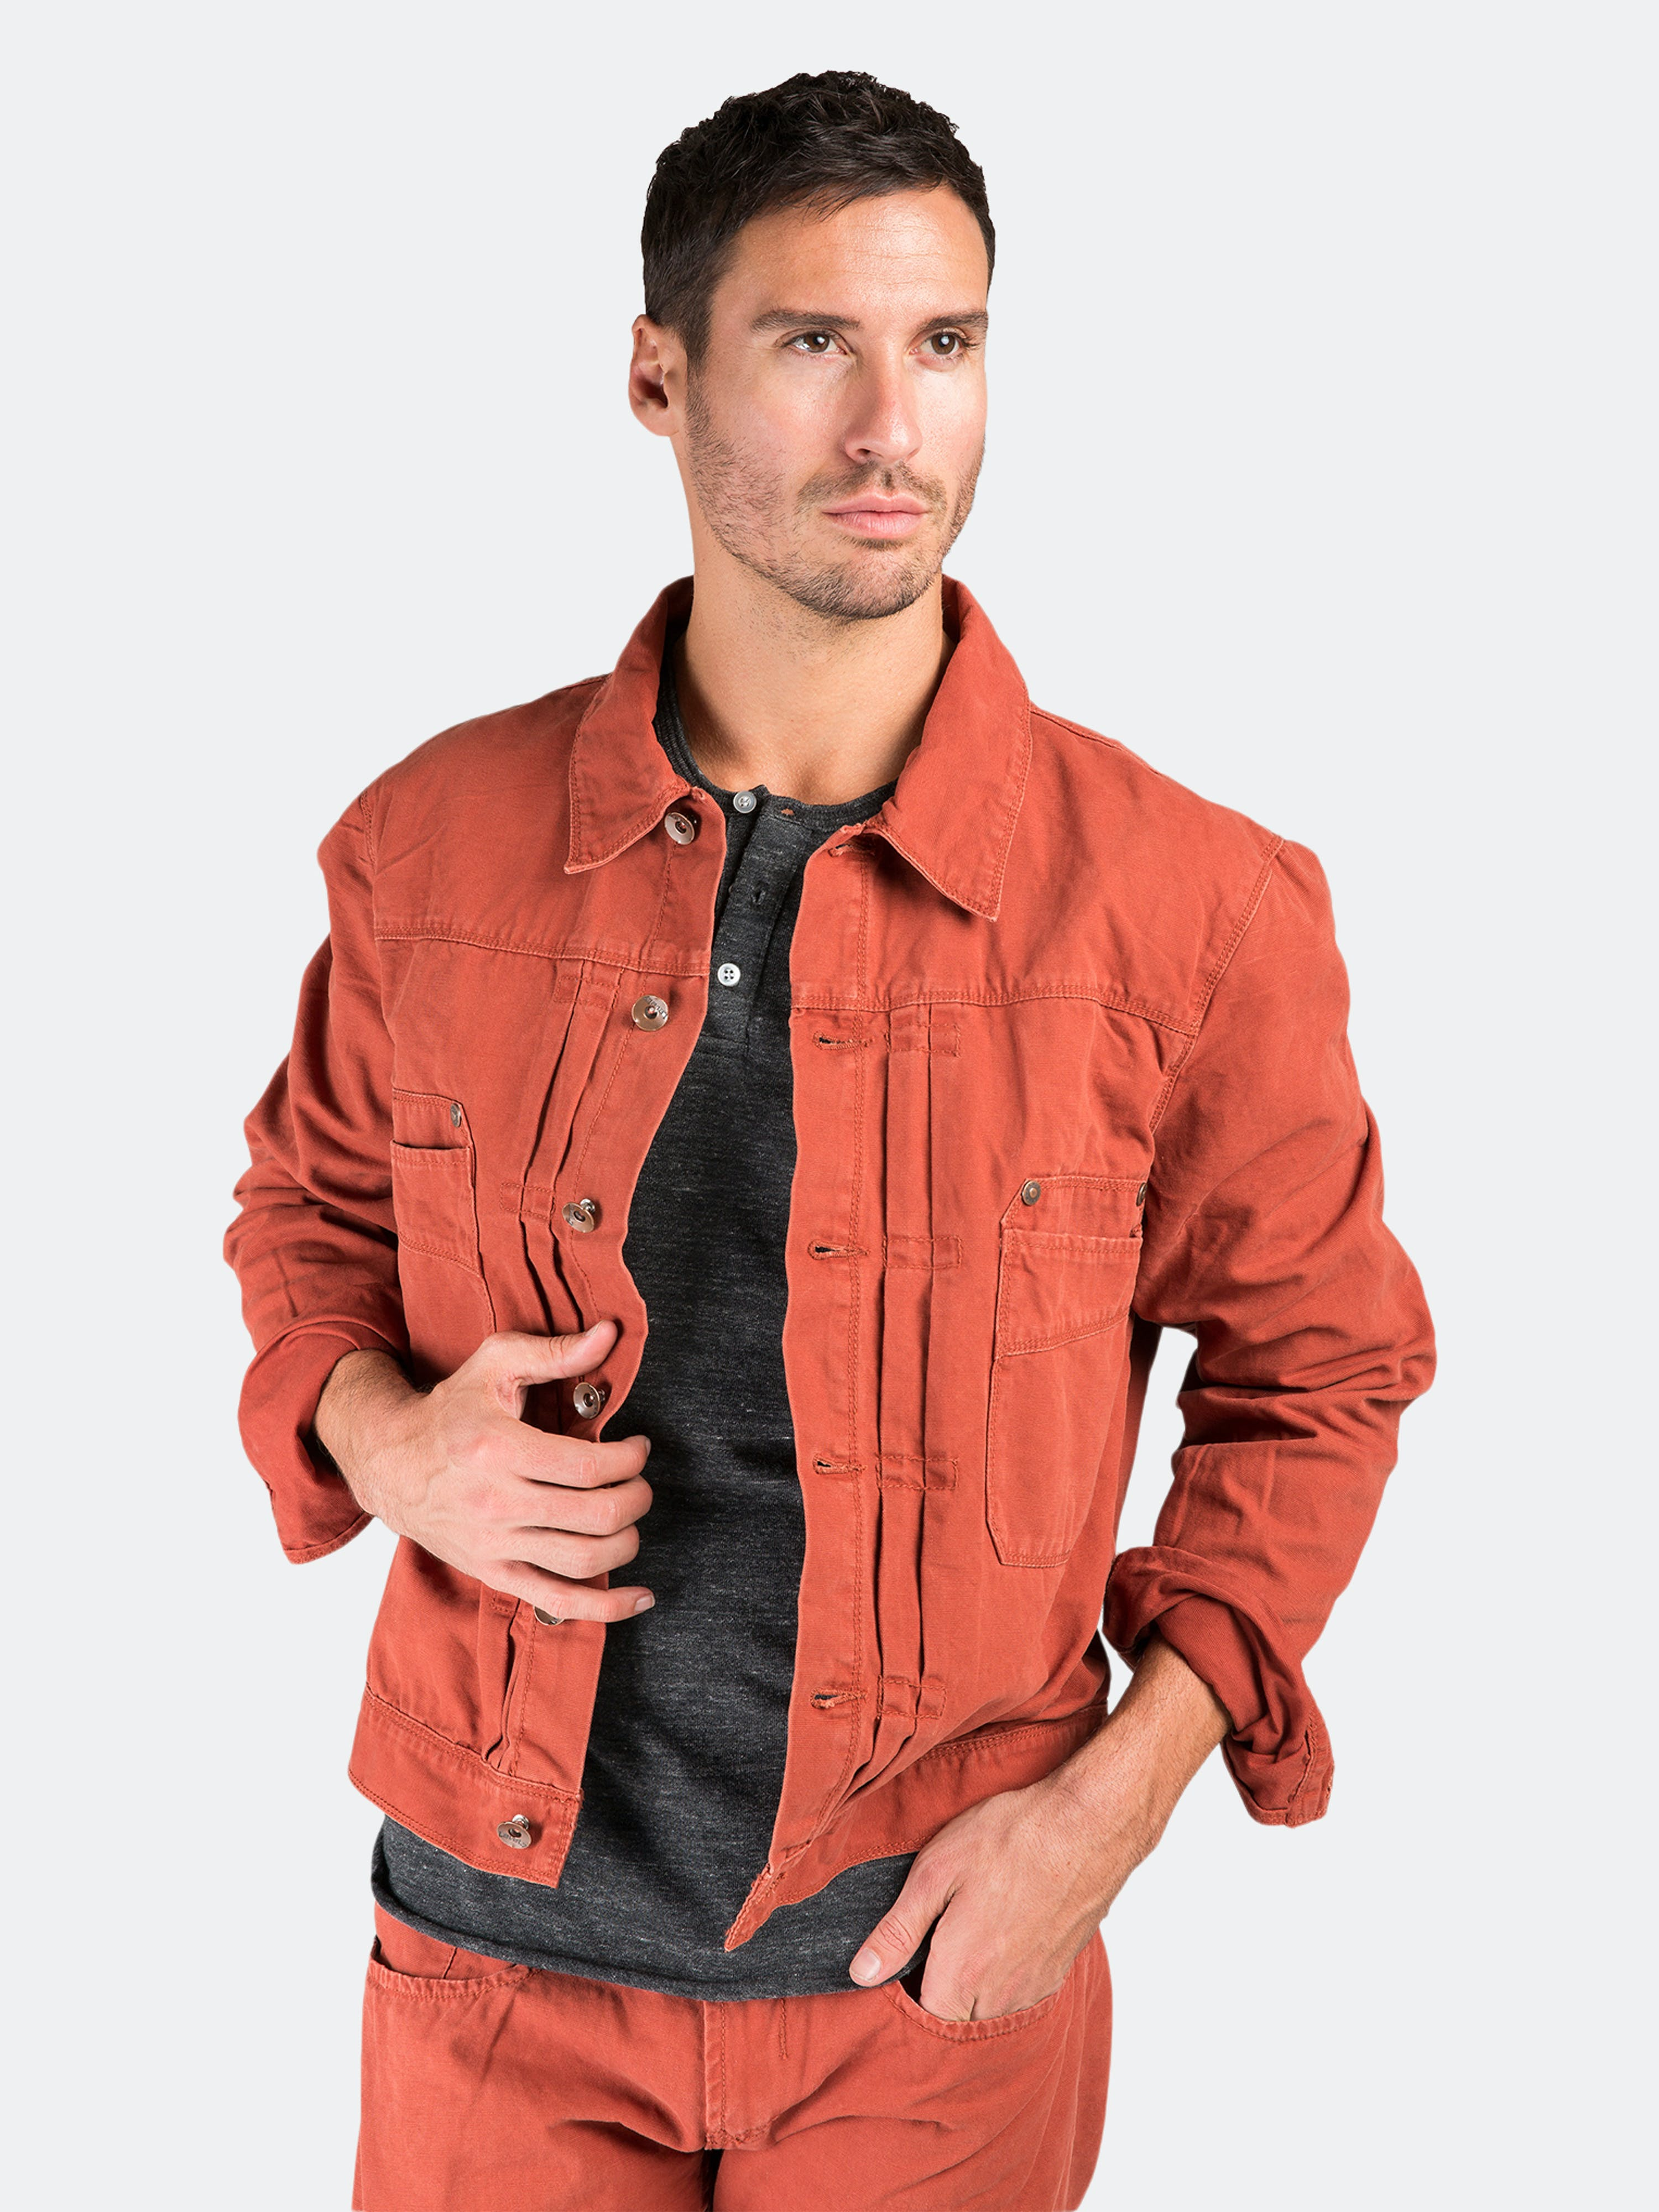 Level 7 Bbq Red Heavy Wash Canvas Trucker Jacket 100% Cotton Rugged And Stylish